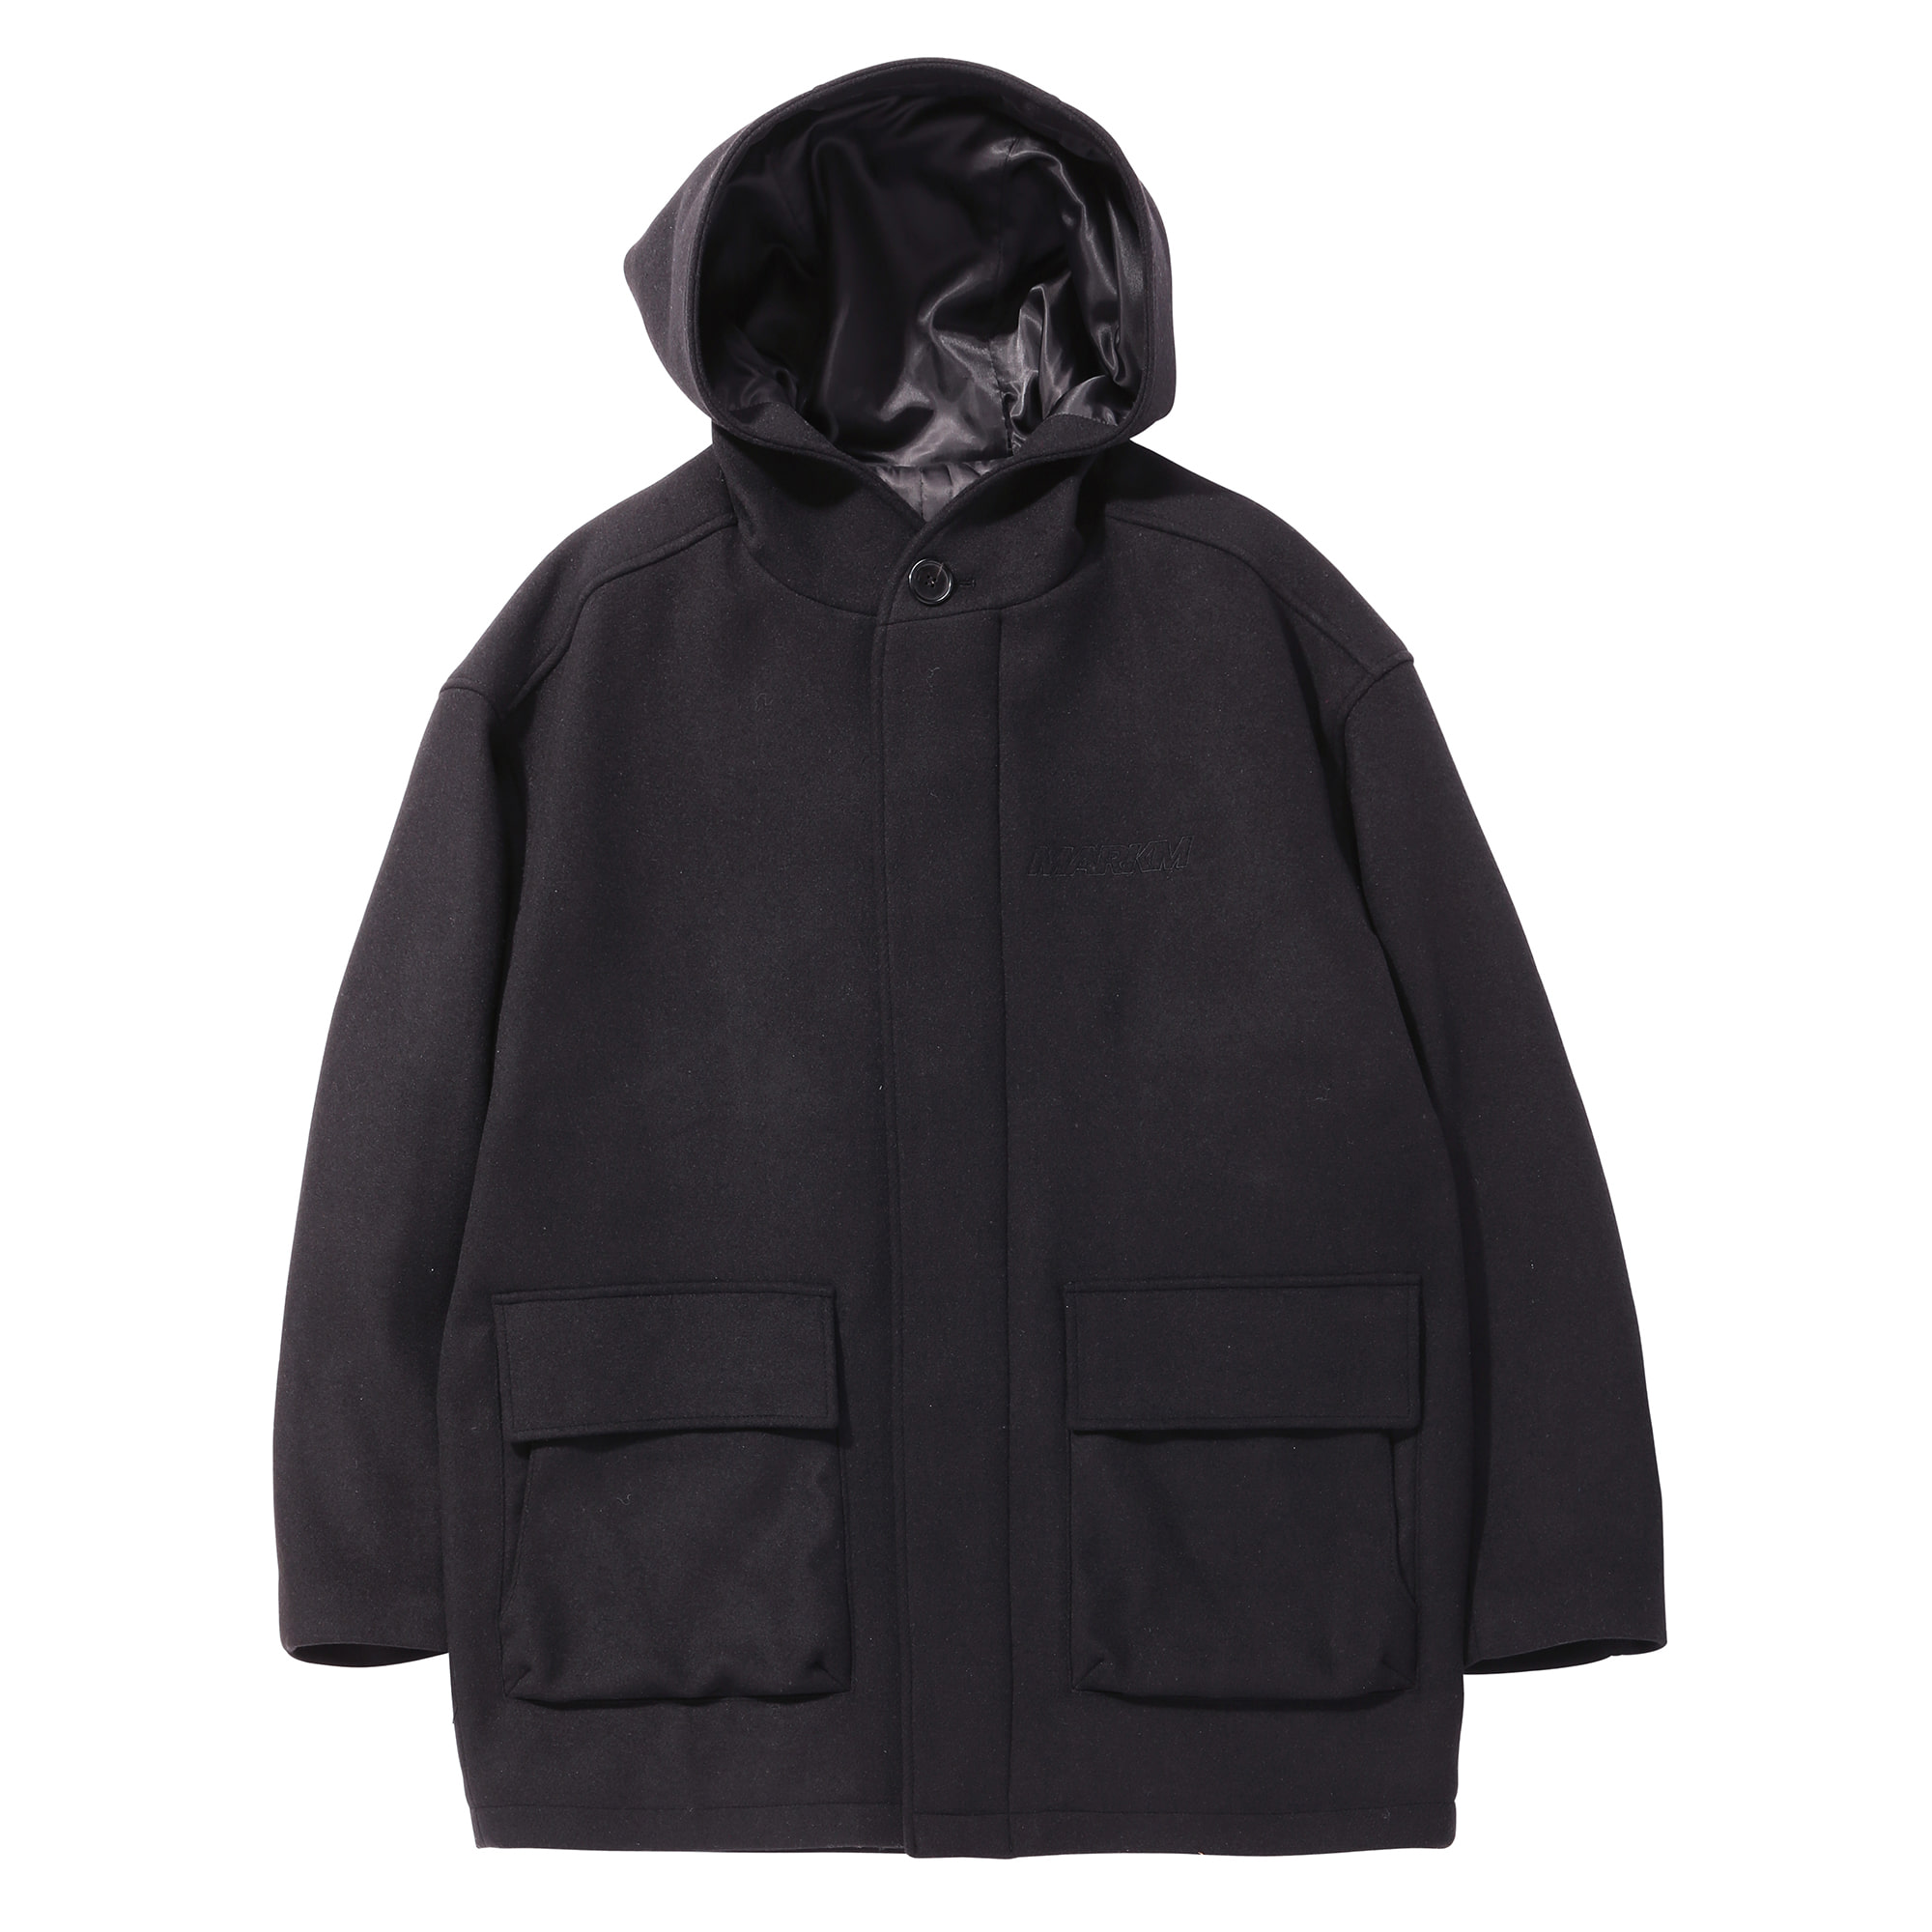 MM Pocket hood Coat MYLAY7703